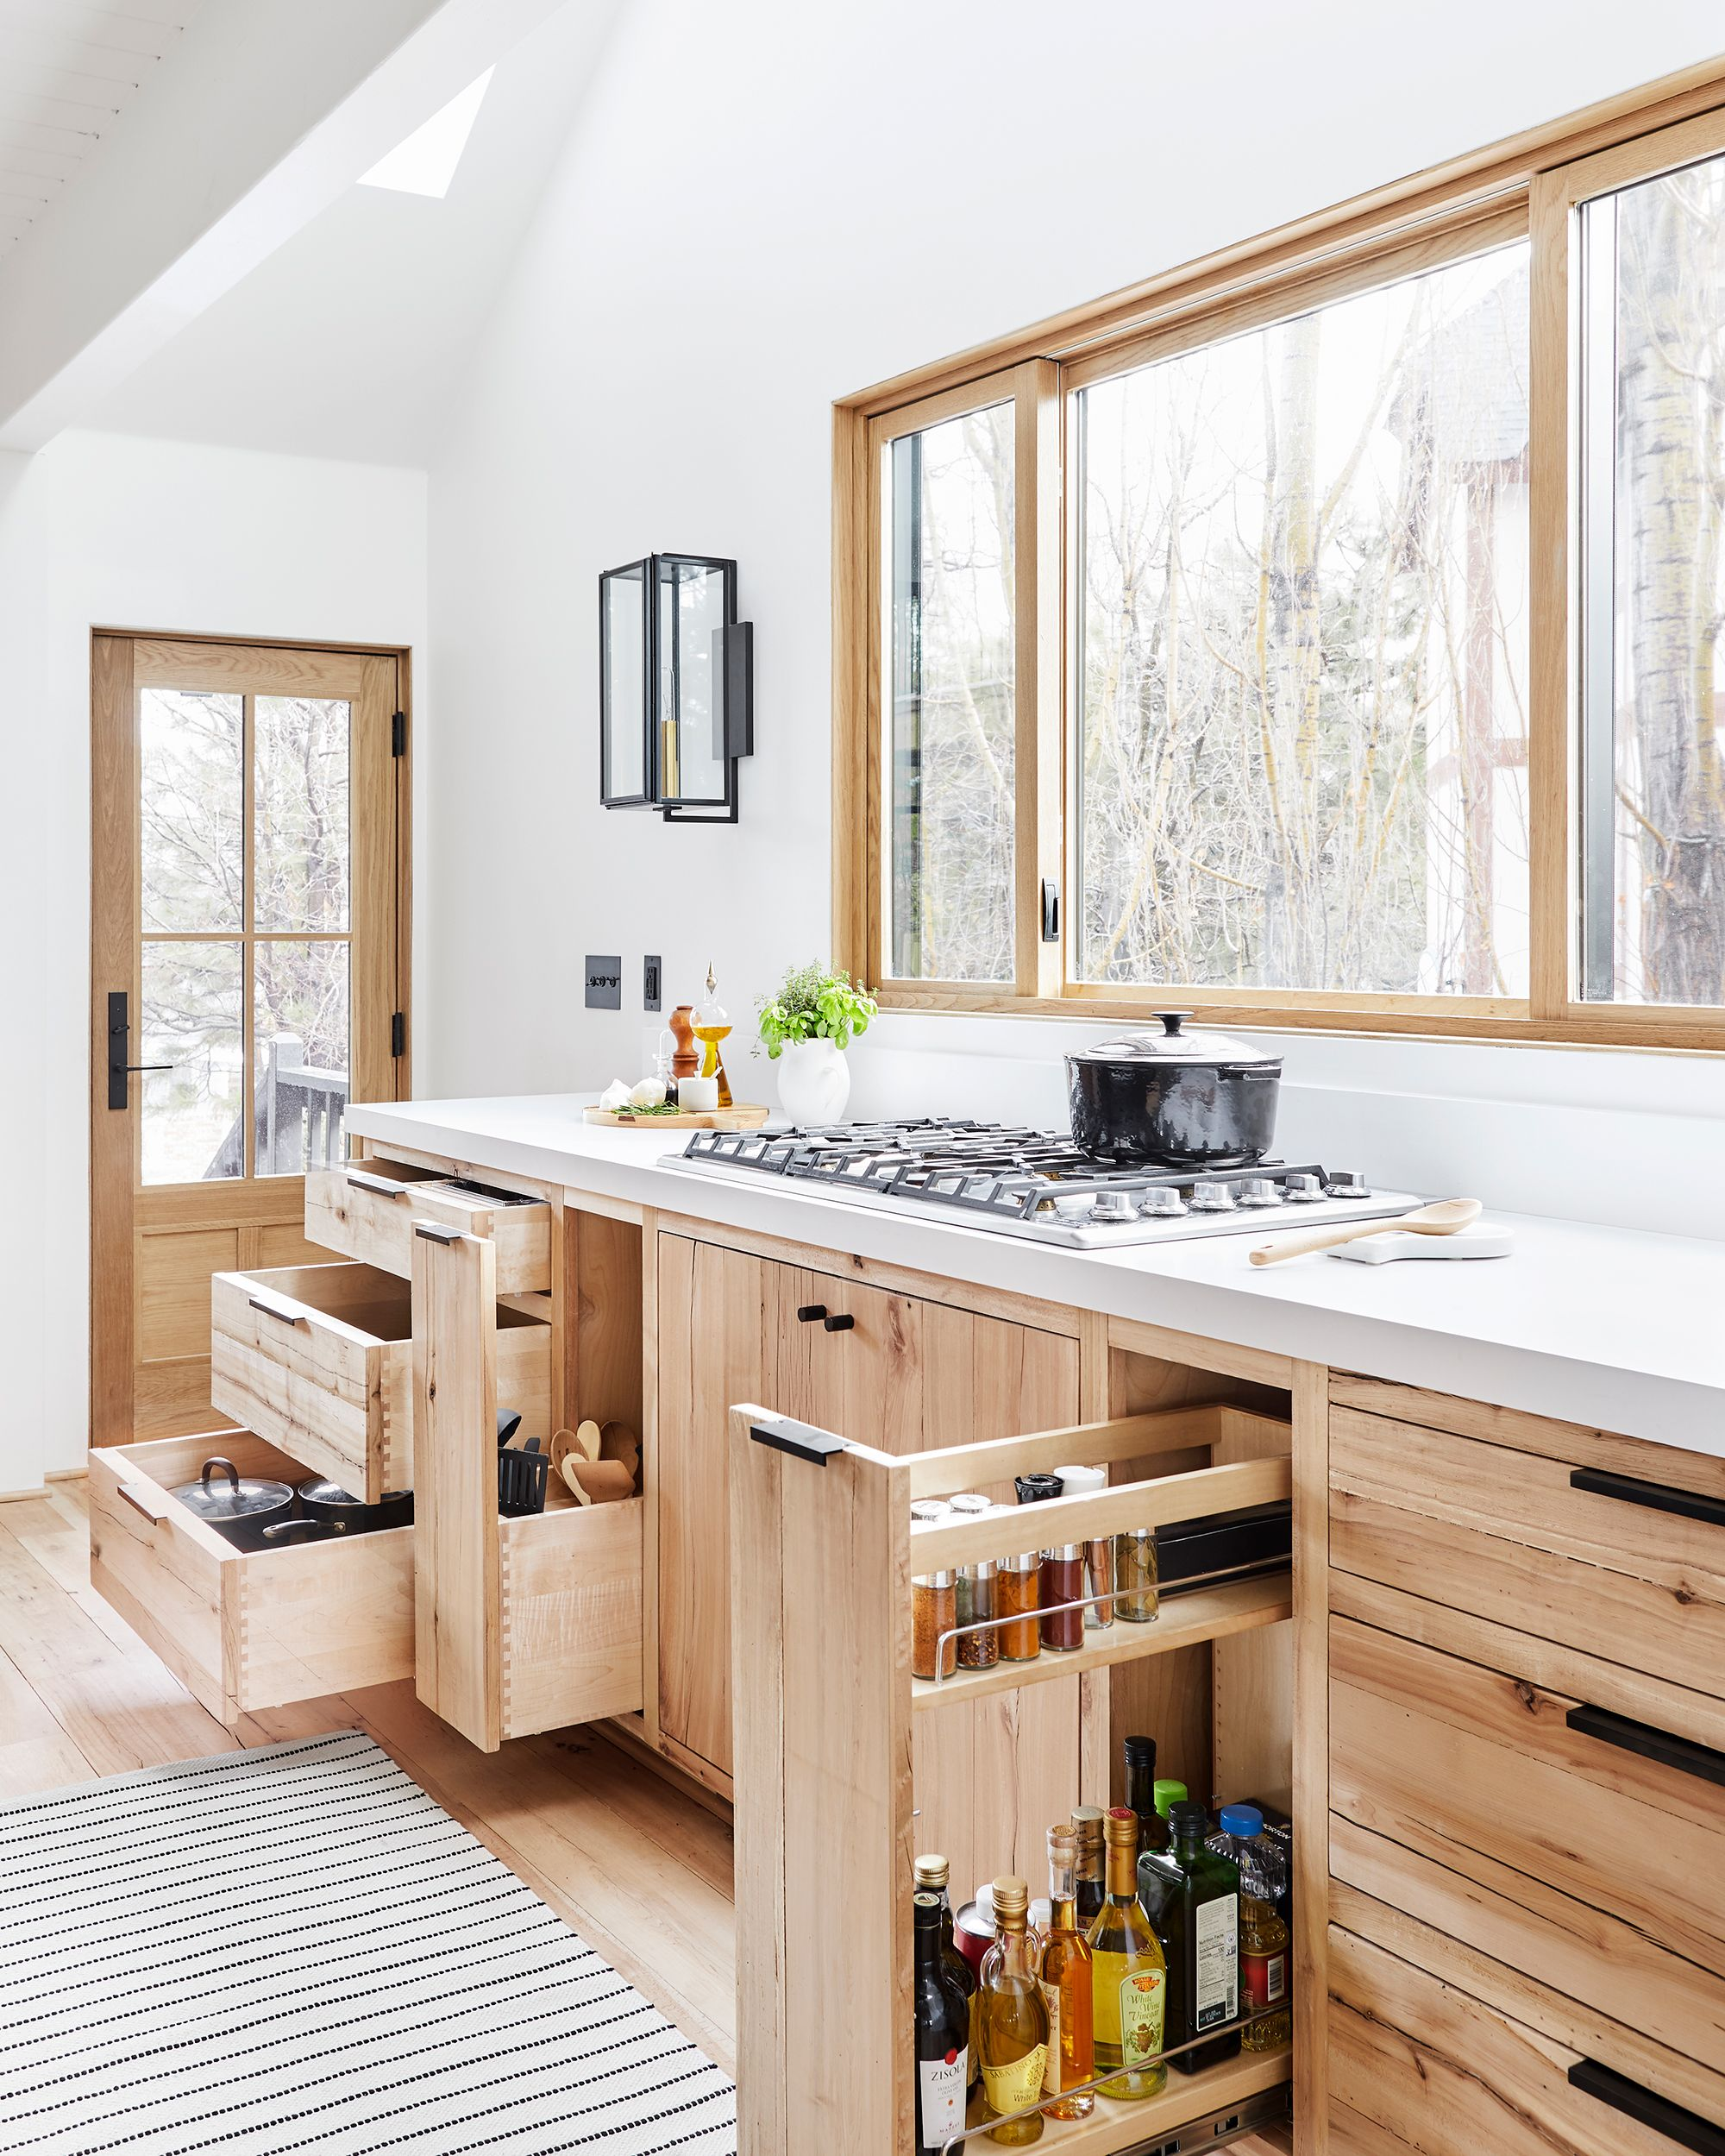 8 Unique Kitchen Storage Ideas - Easy Storage Solutions for Kitchens